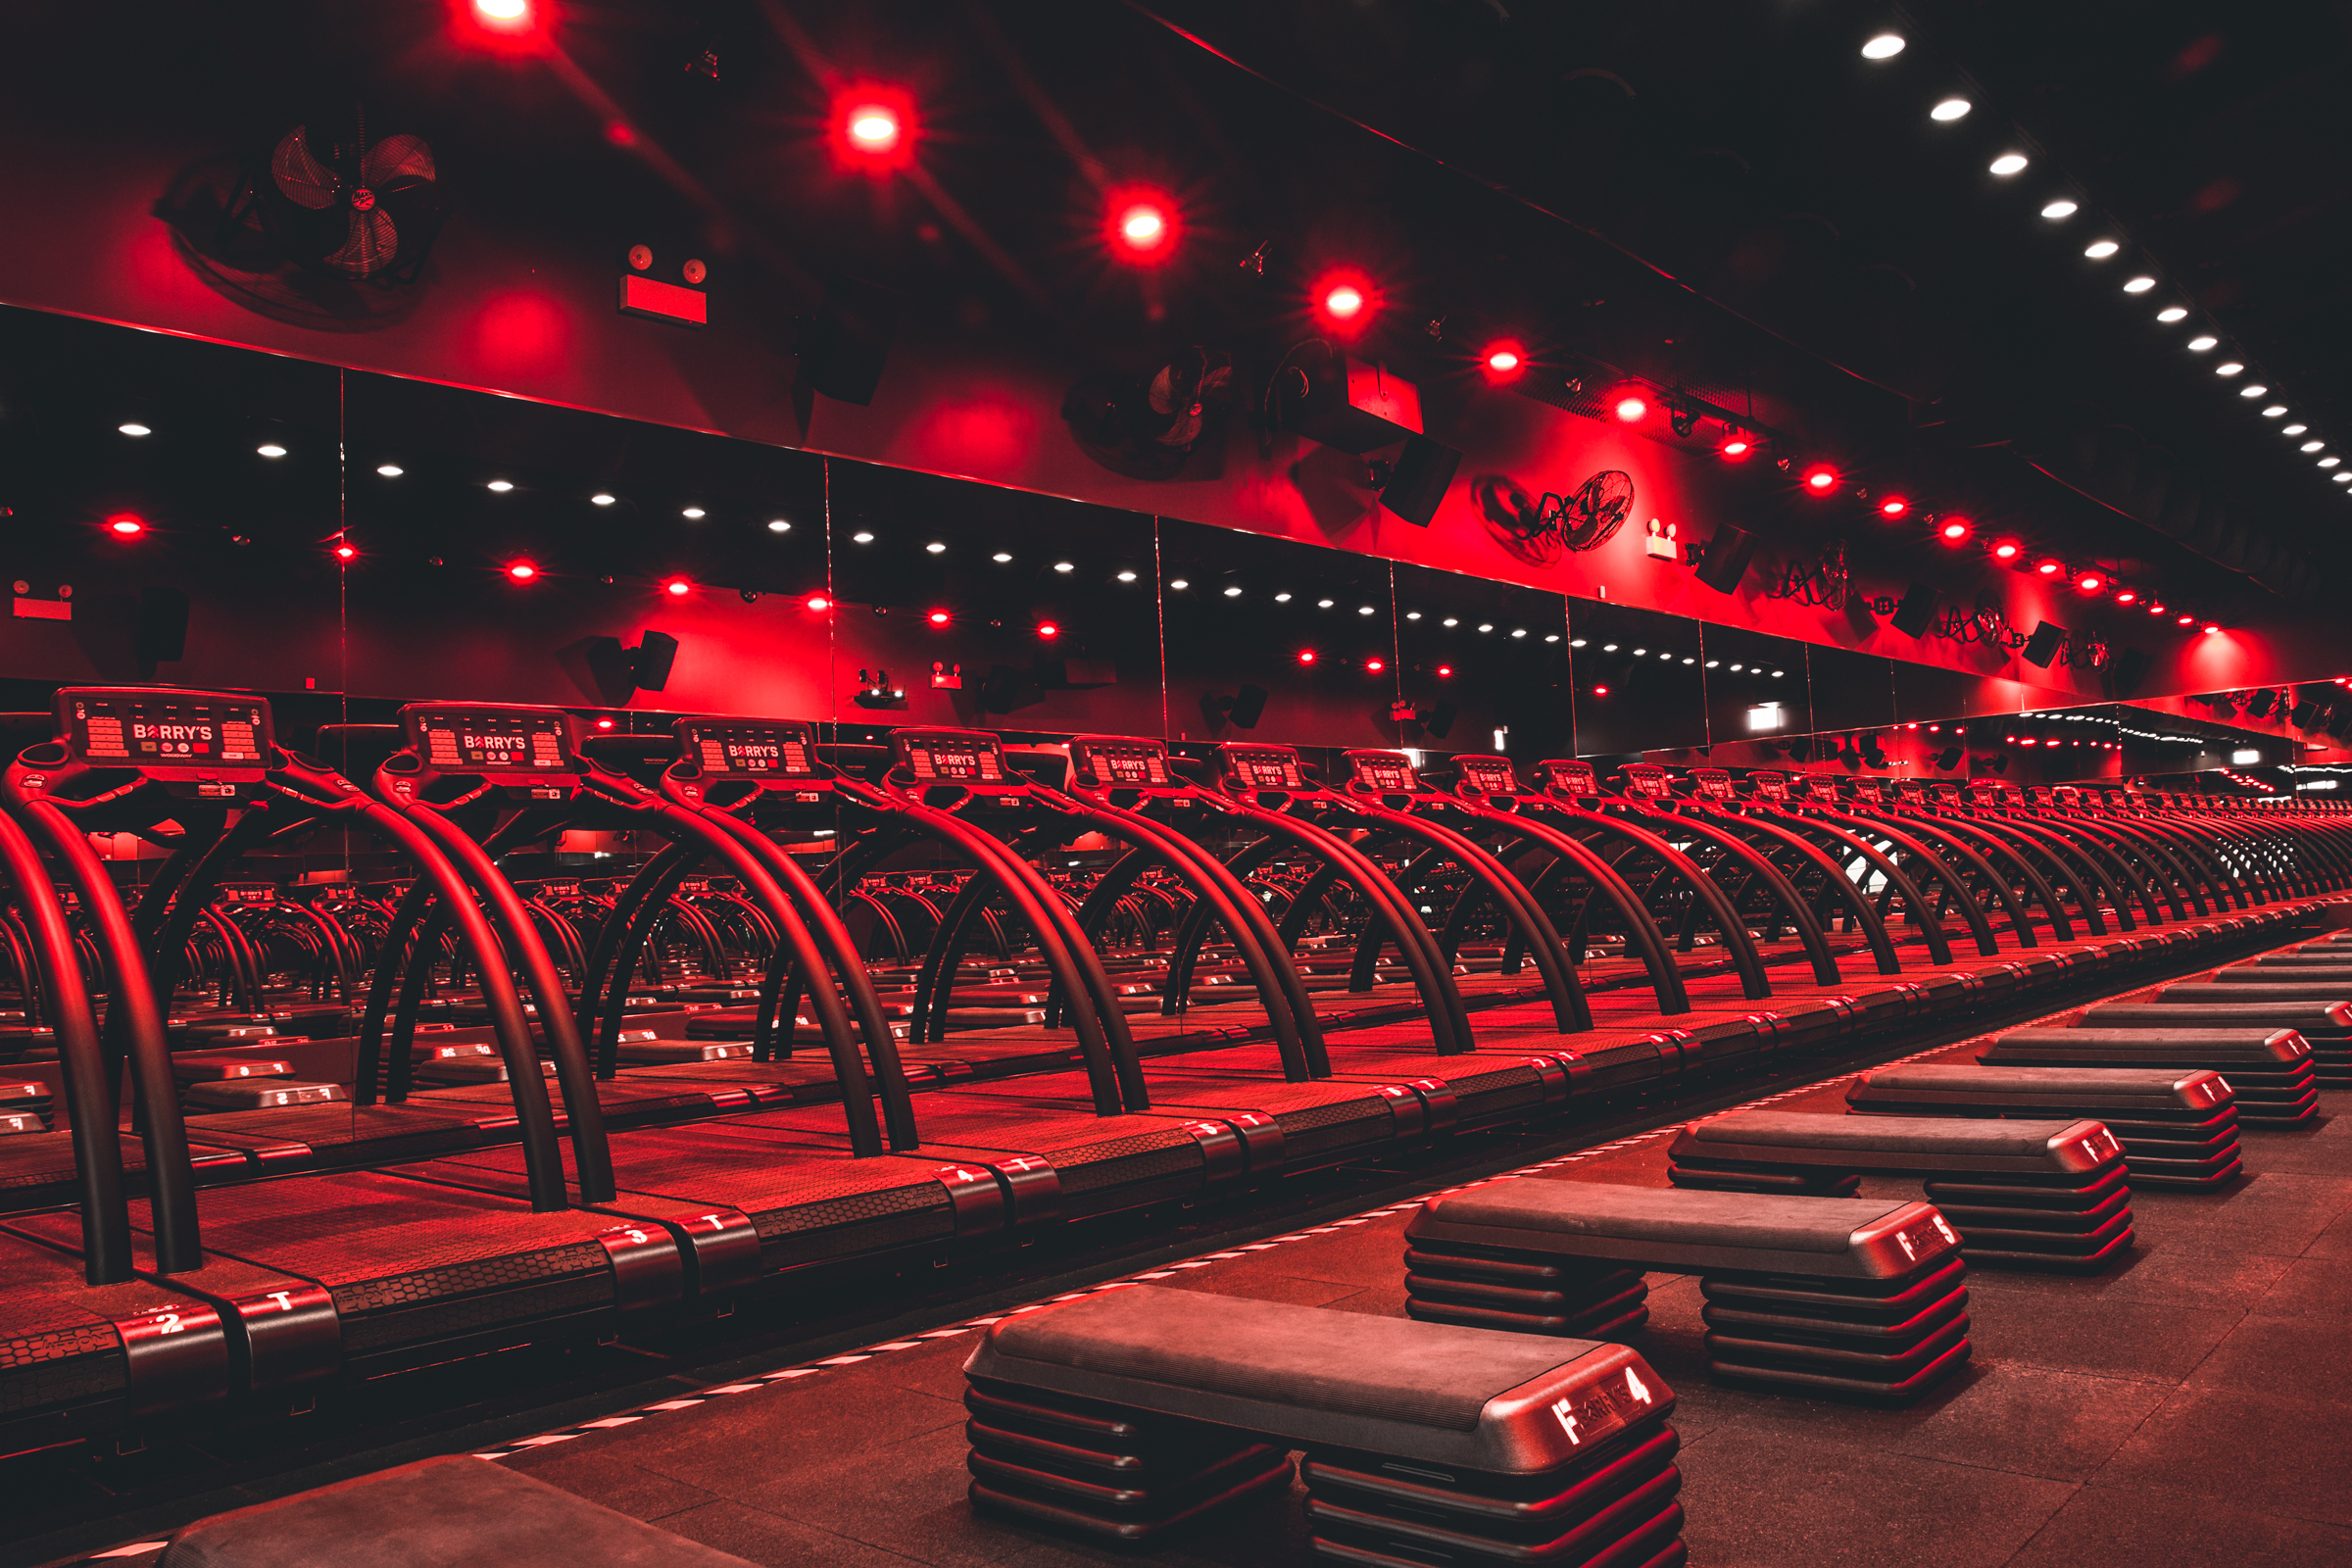 Barry's Bootcamp Studio (Barry's Bootcamp)